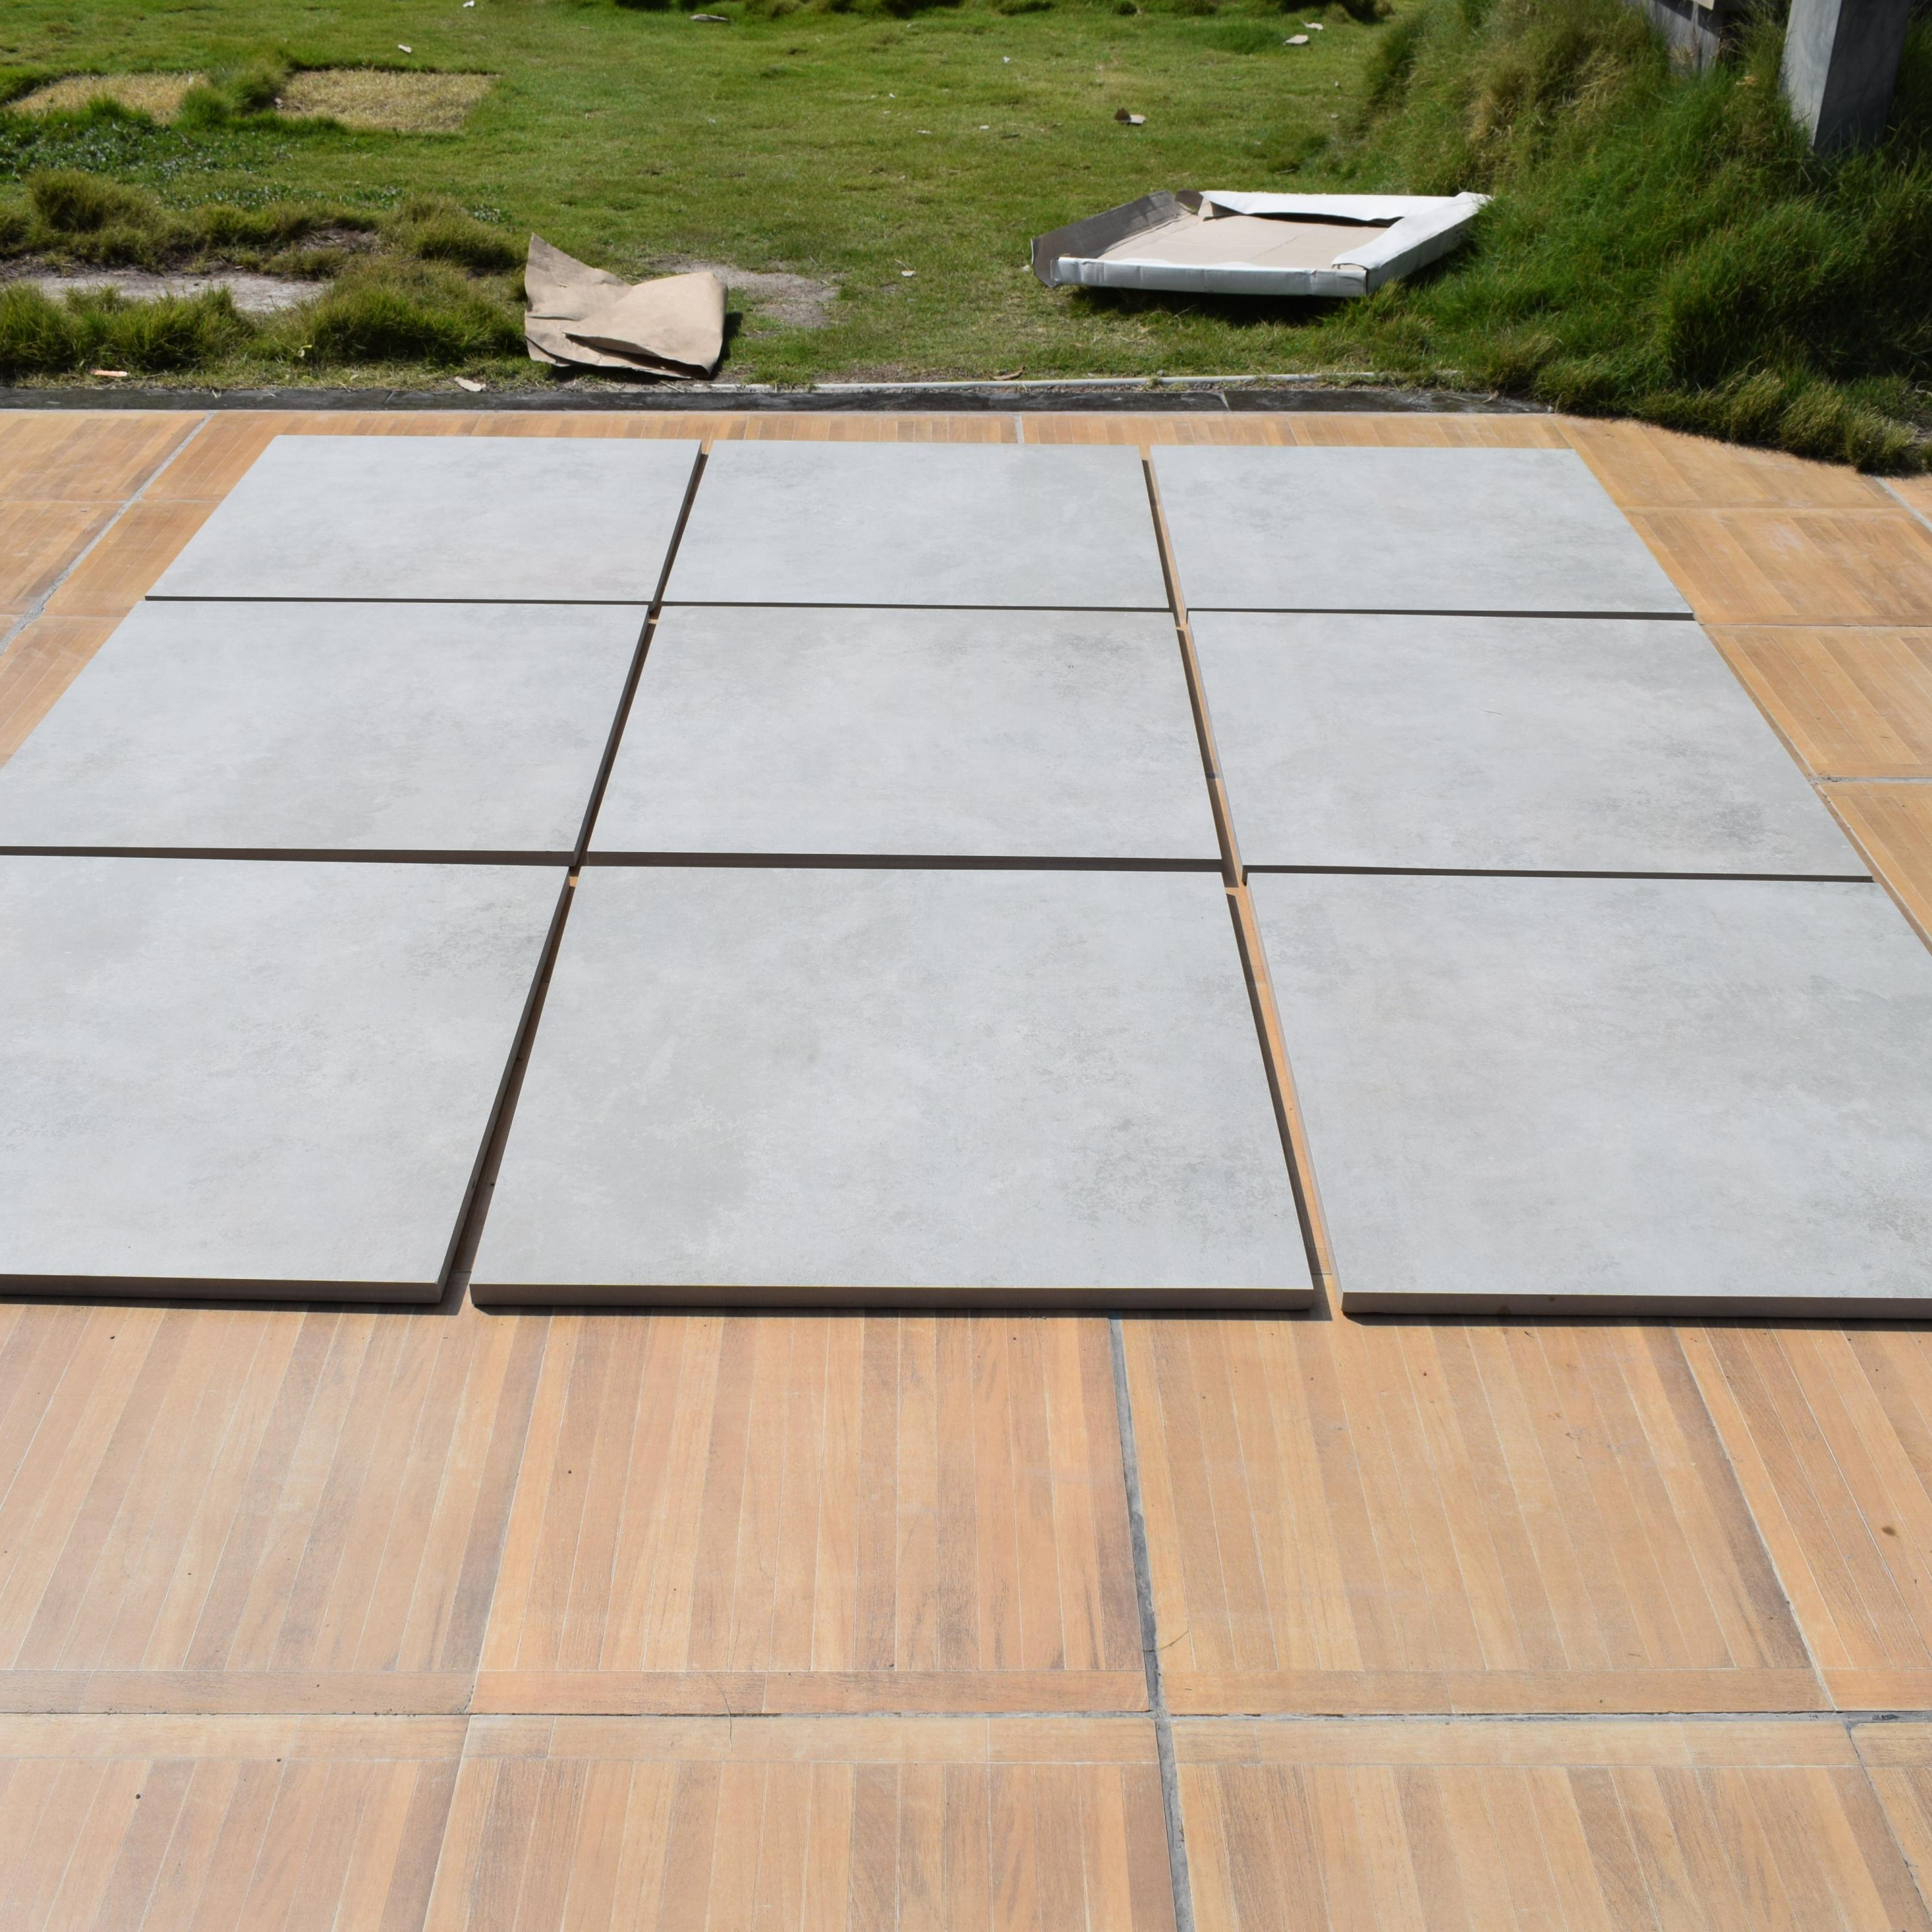 r11 cementino ash 20 mm thickness exterior heavy duty outdoor porcelain stone full body 2cm tiles beige color 600 x 600 mm buy solid color porcelain